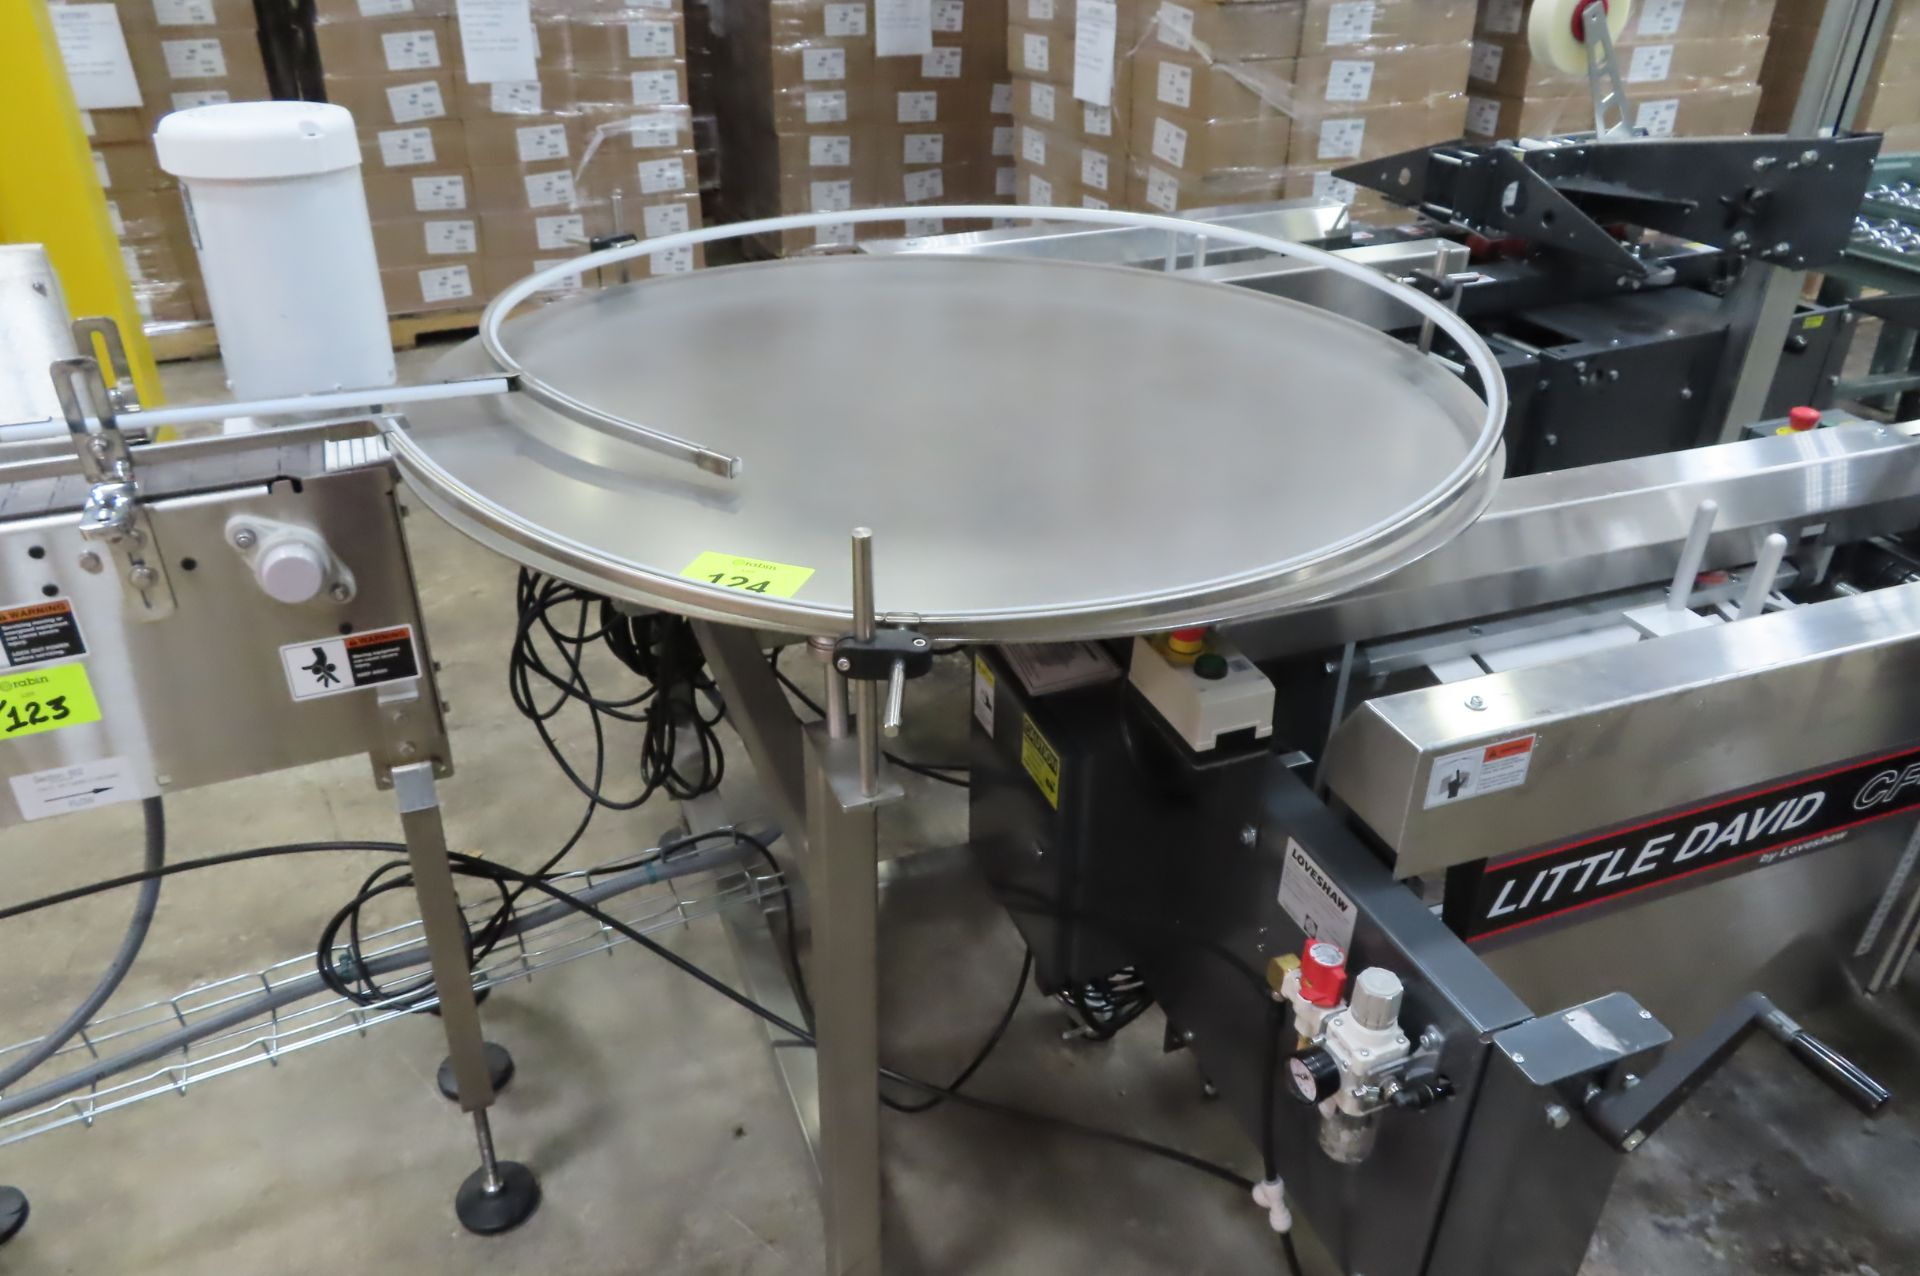 Rotary Accmulation Table